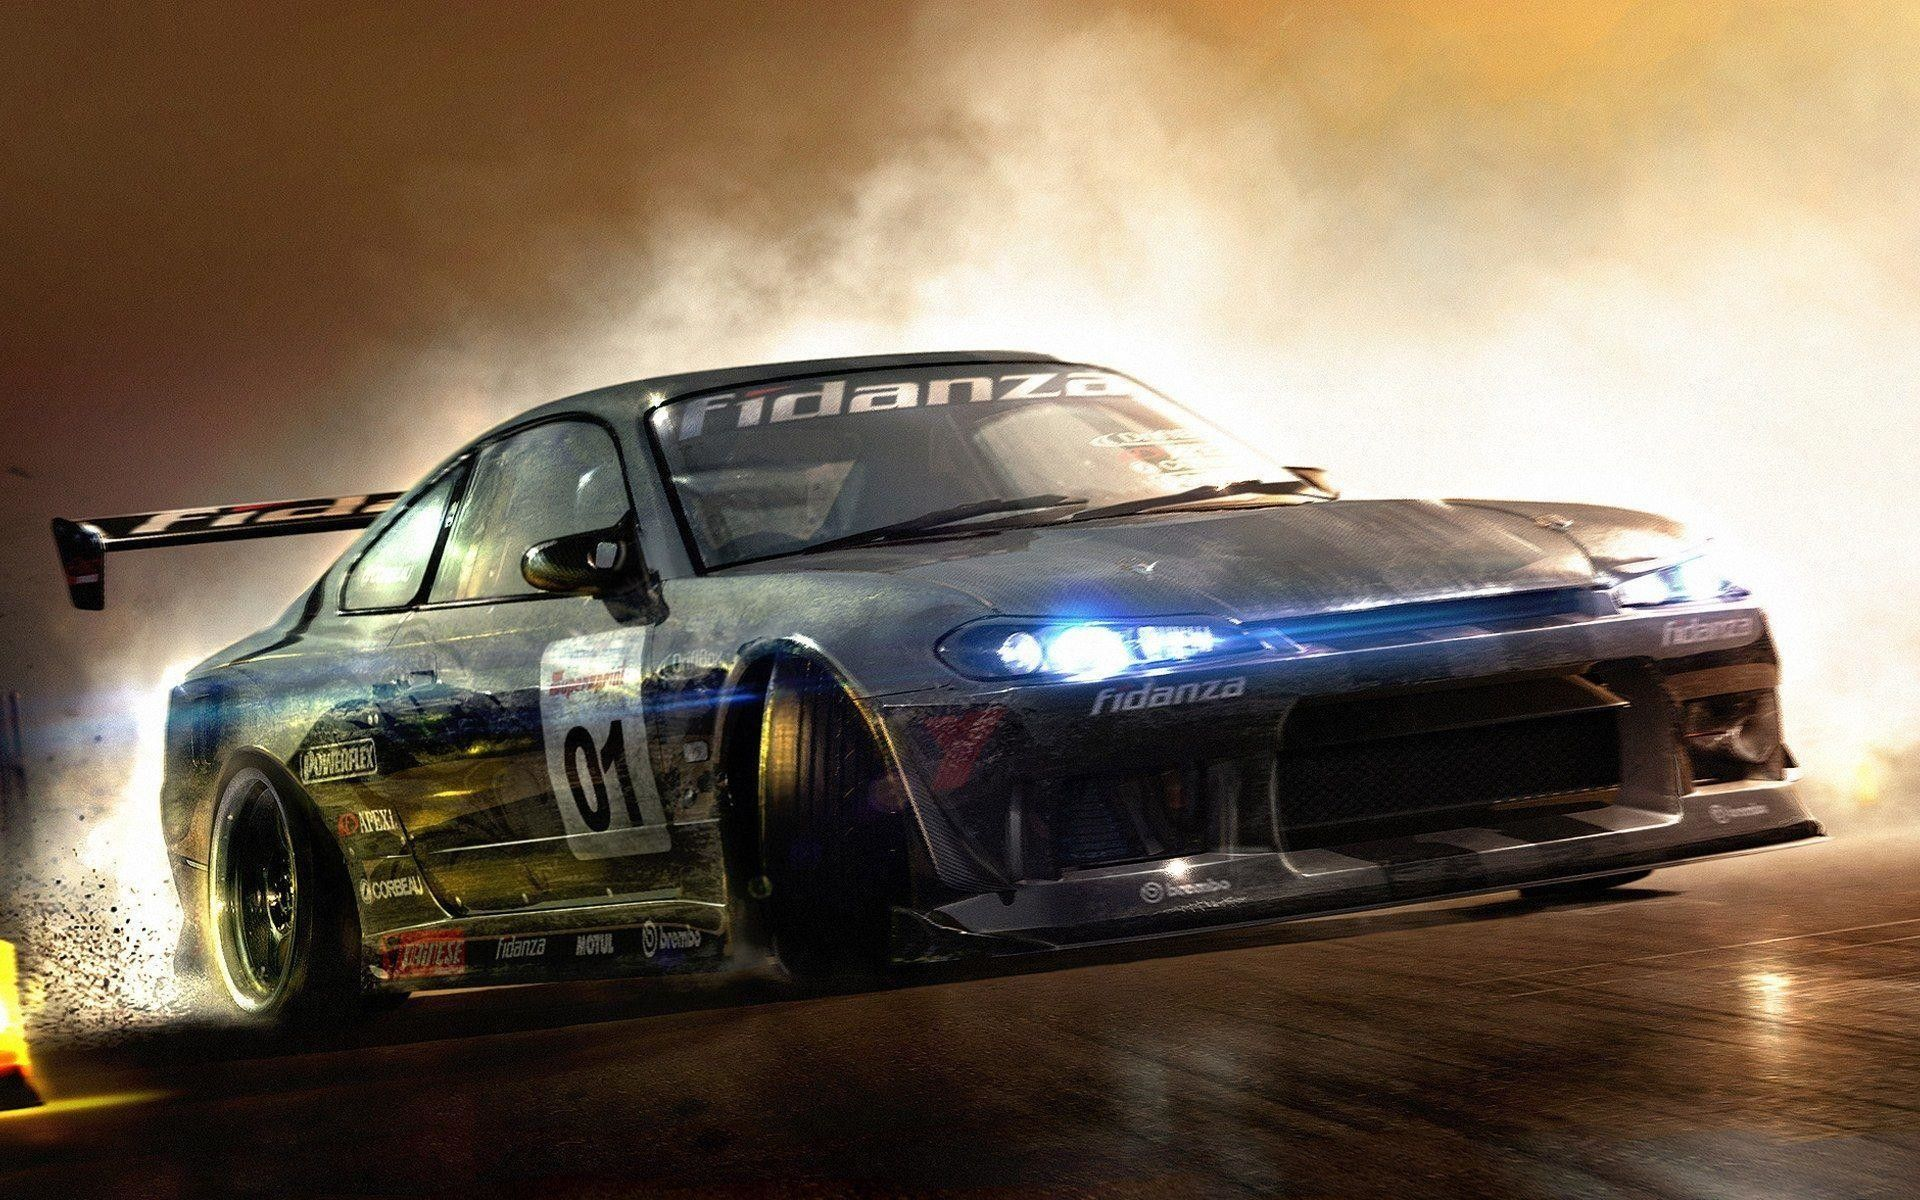 Racing Car Collection See All Wallpapers Wallpapers Background Cars Car Wallpapers Sports Car Wallpaper Drifting Cars